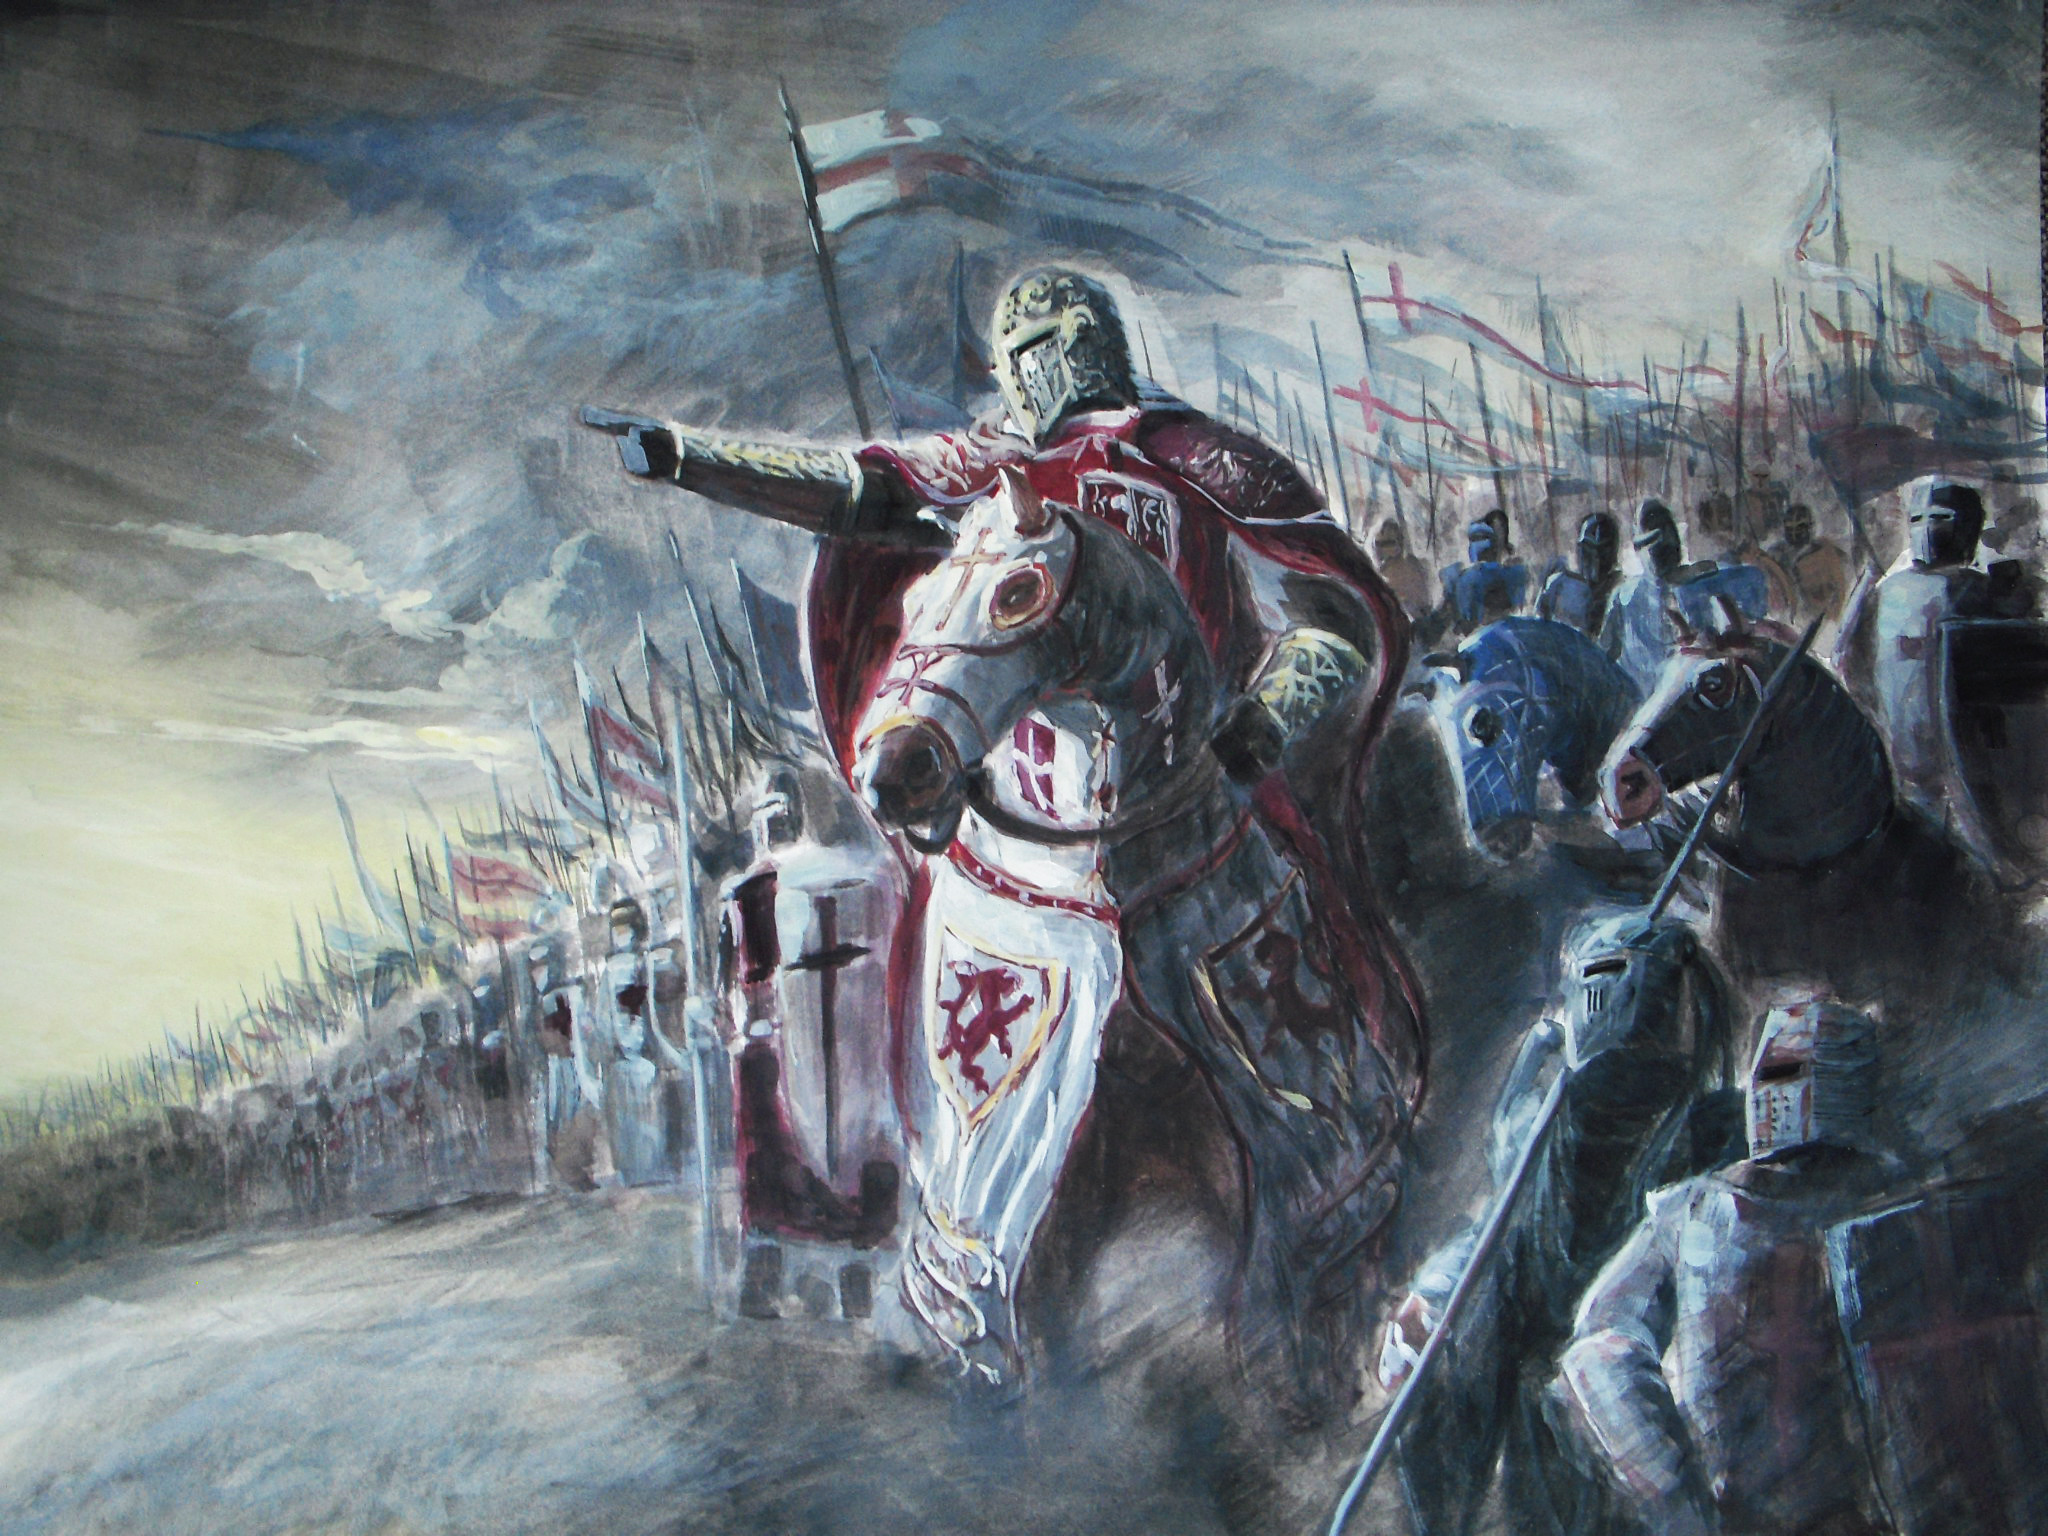 Knight templar wallpaper